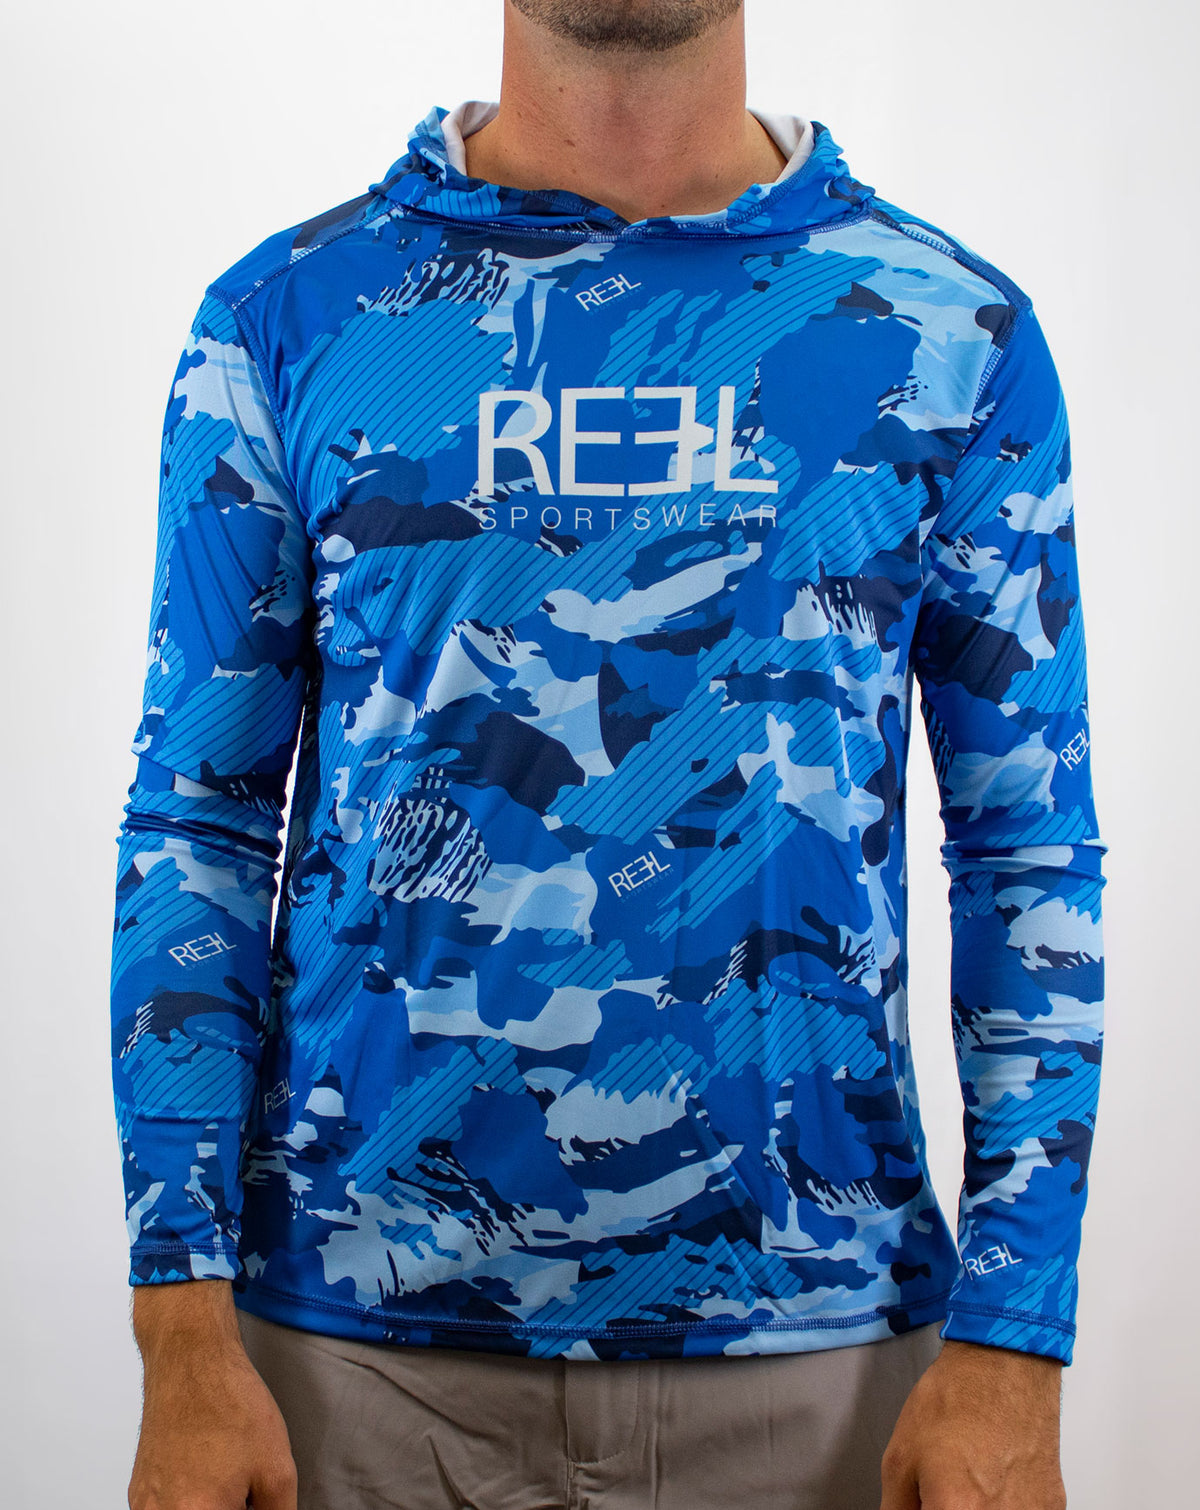 Pursuit Fishing Hooded Long Sleeve Shirt | Reel Sportswear